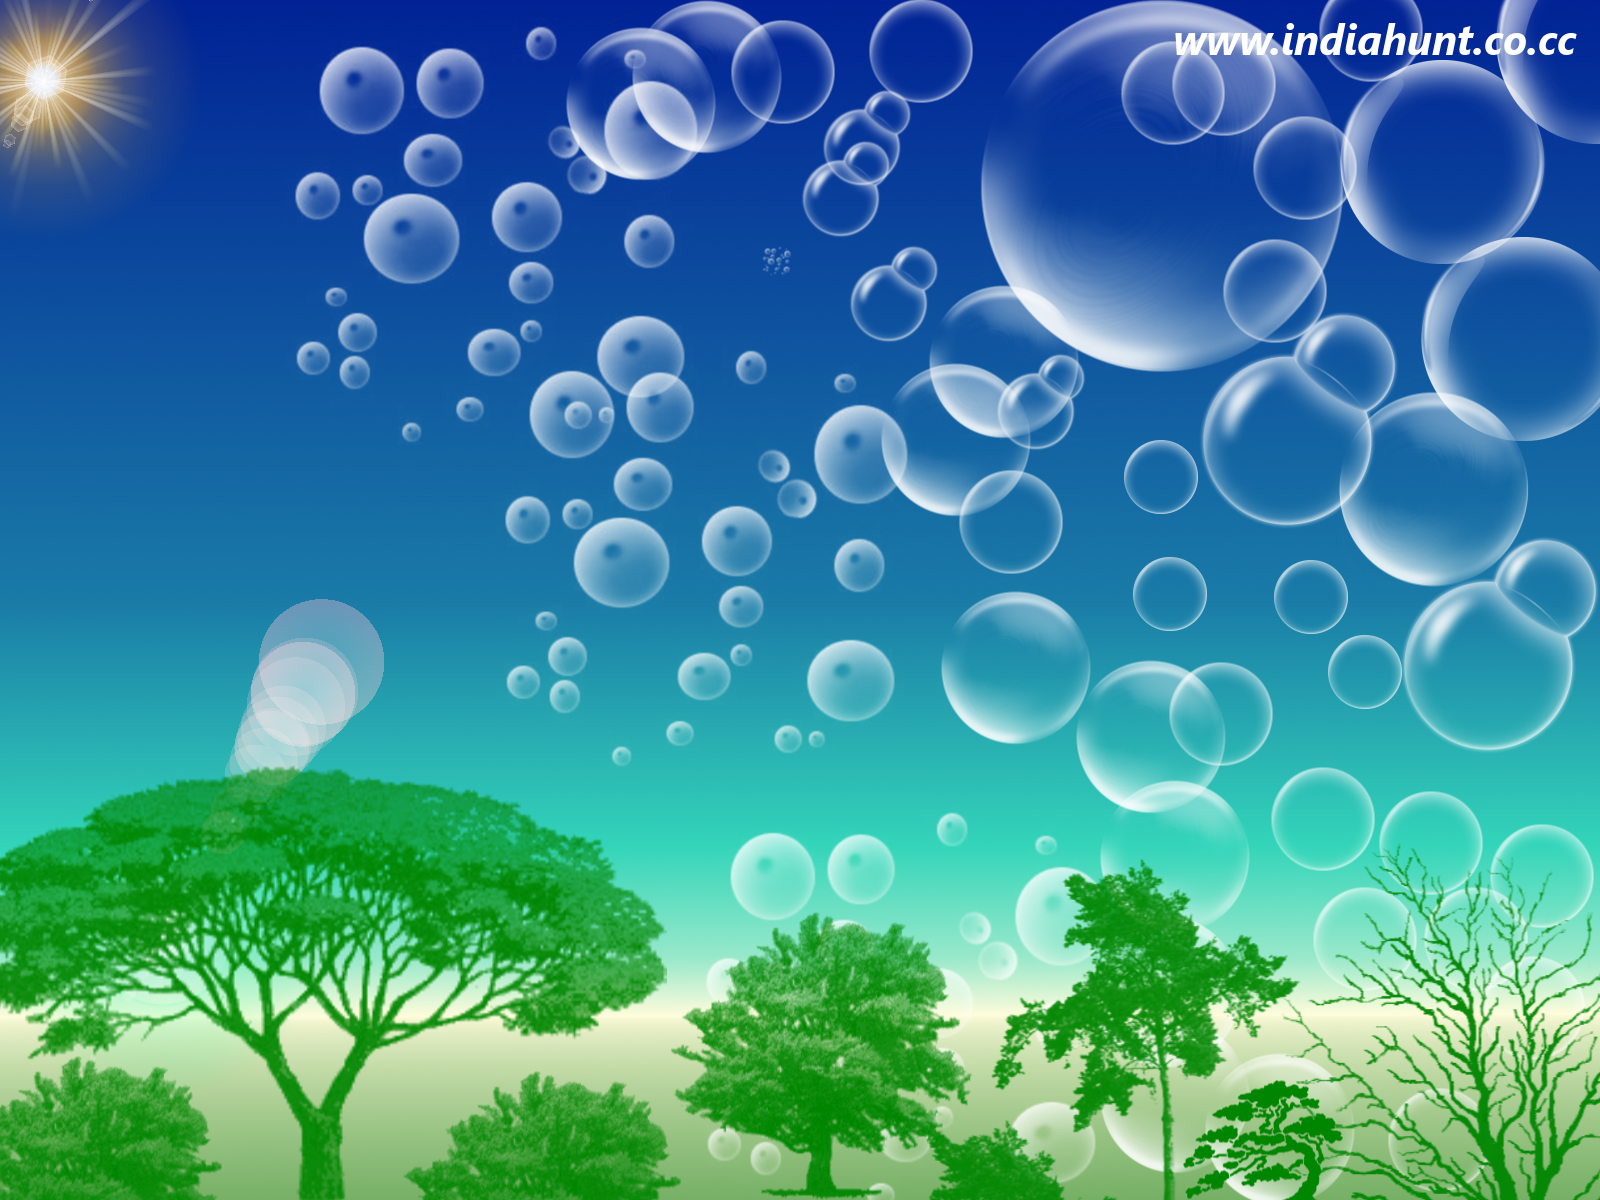 download animated moving wallpaper in high resolution for free high